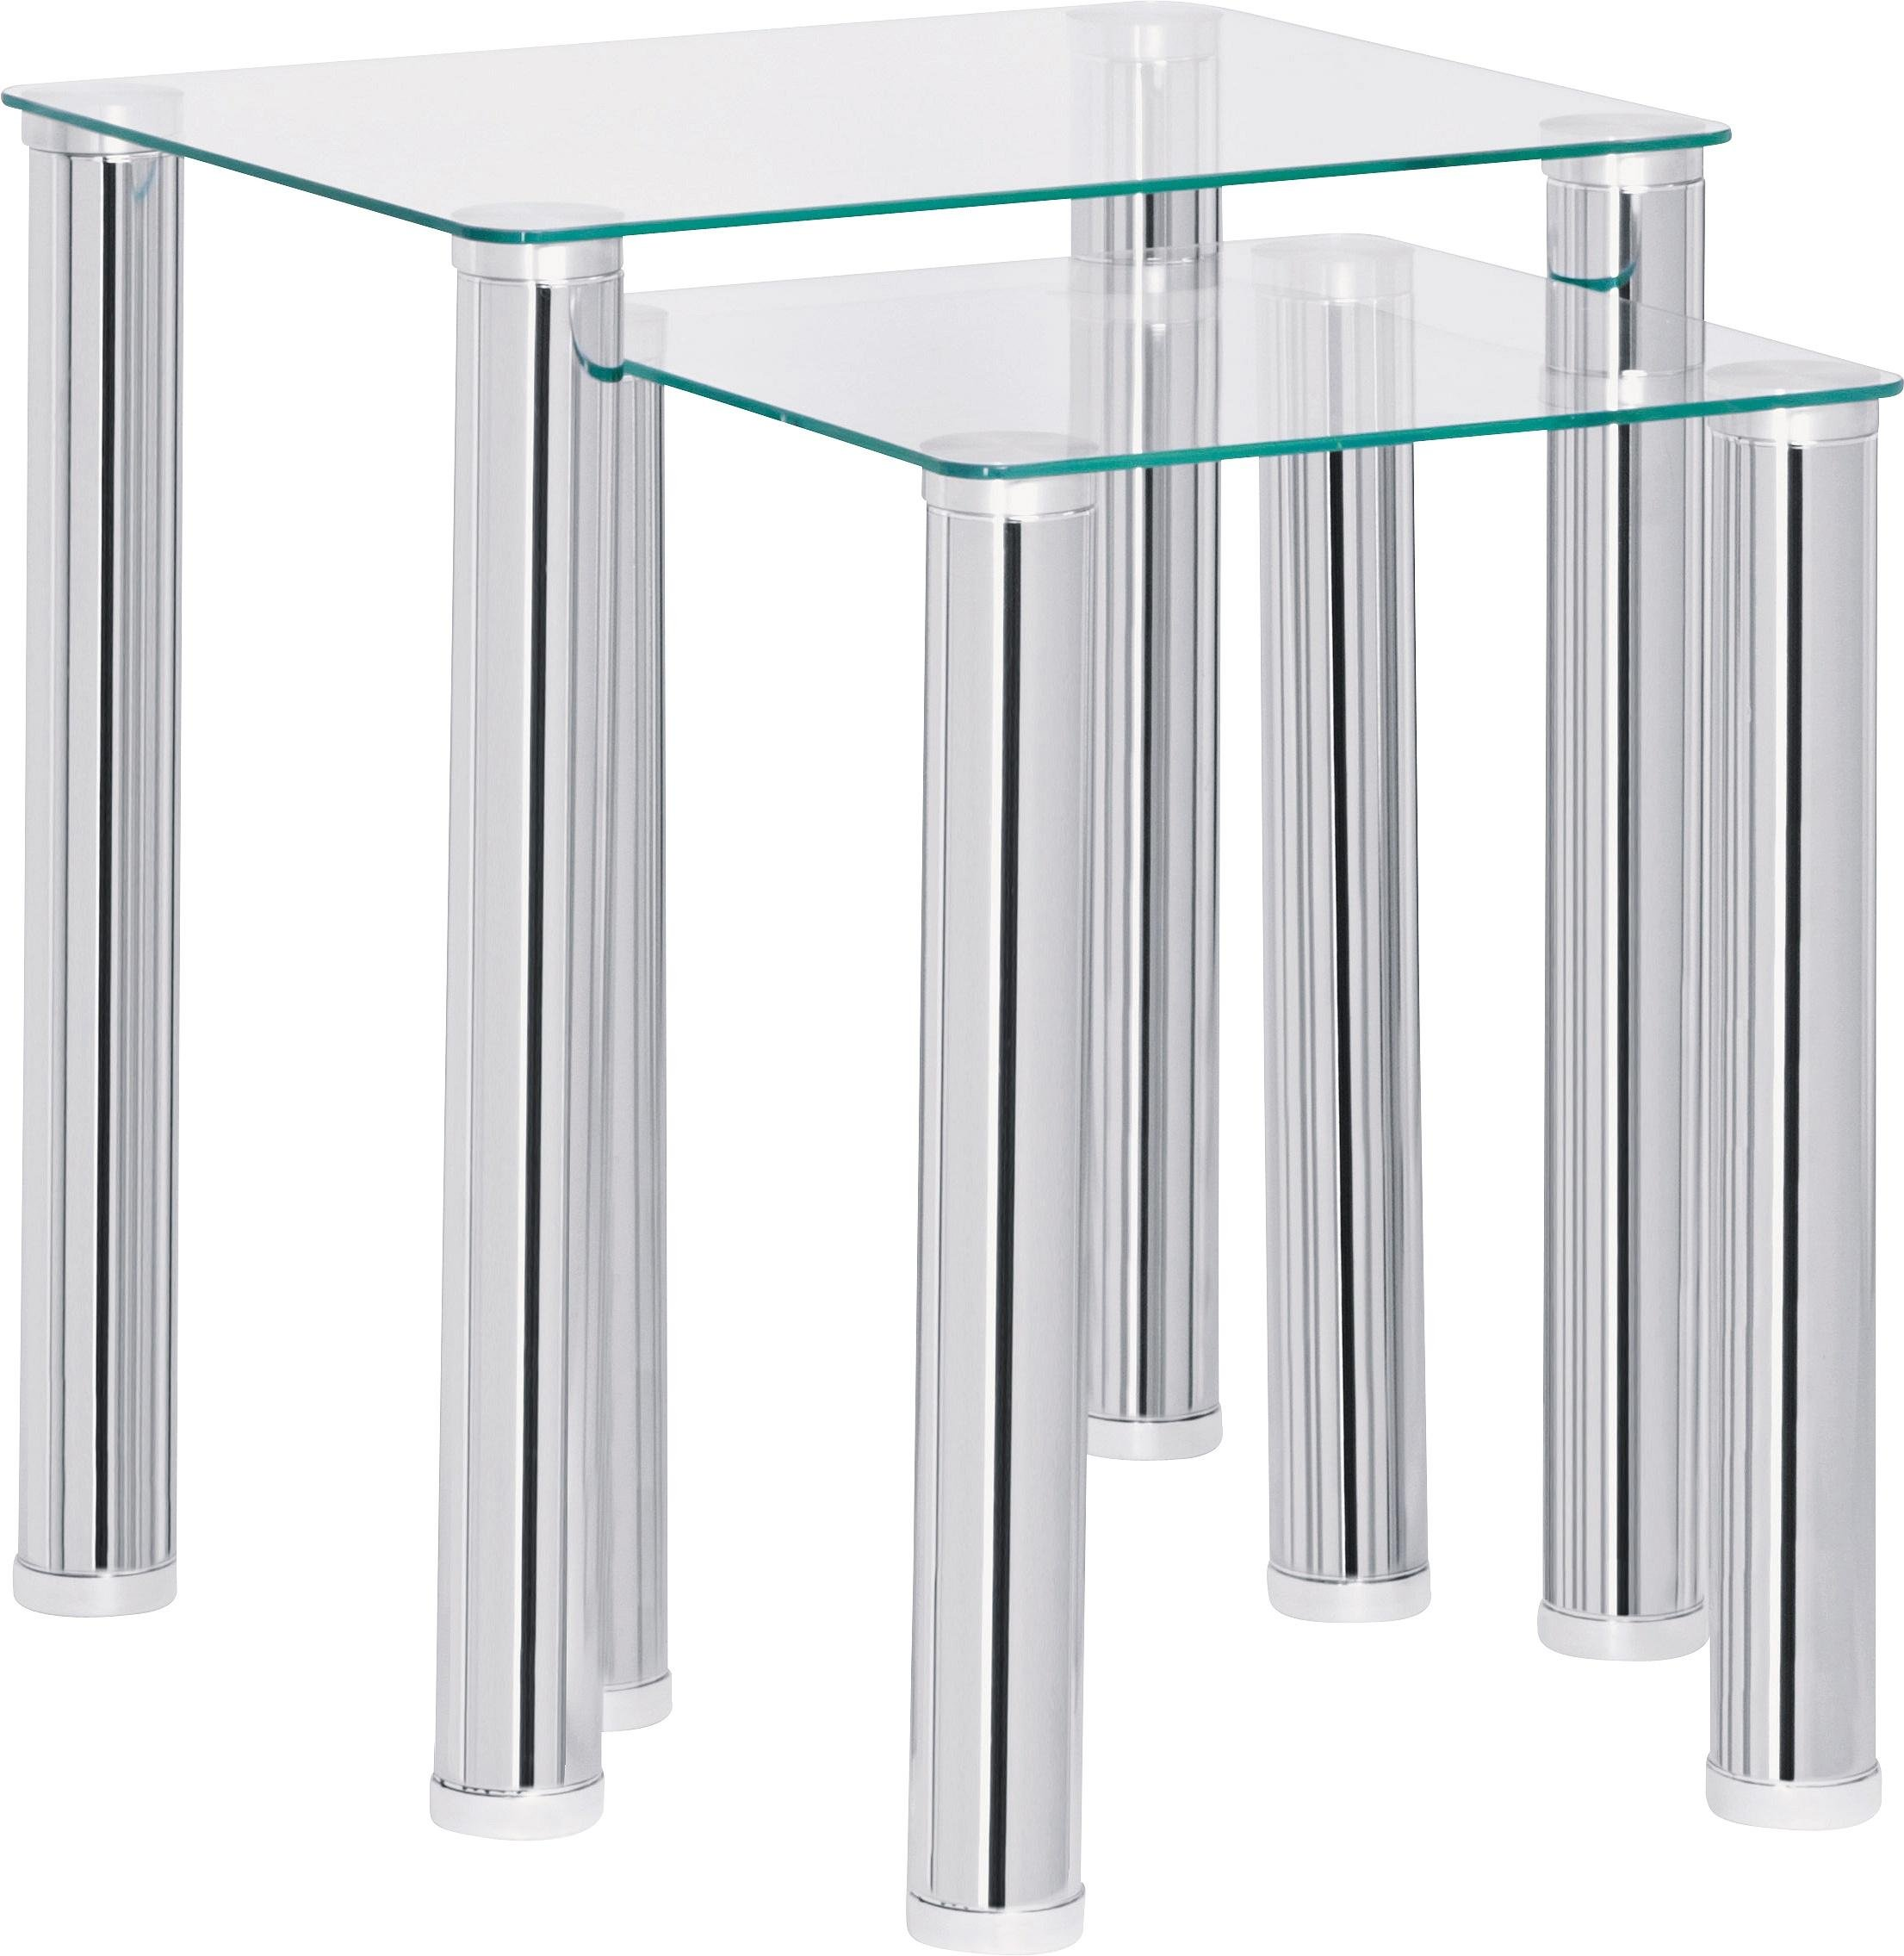 Argos Home Matrix Nest of 2 Glass Tables - Clear